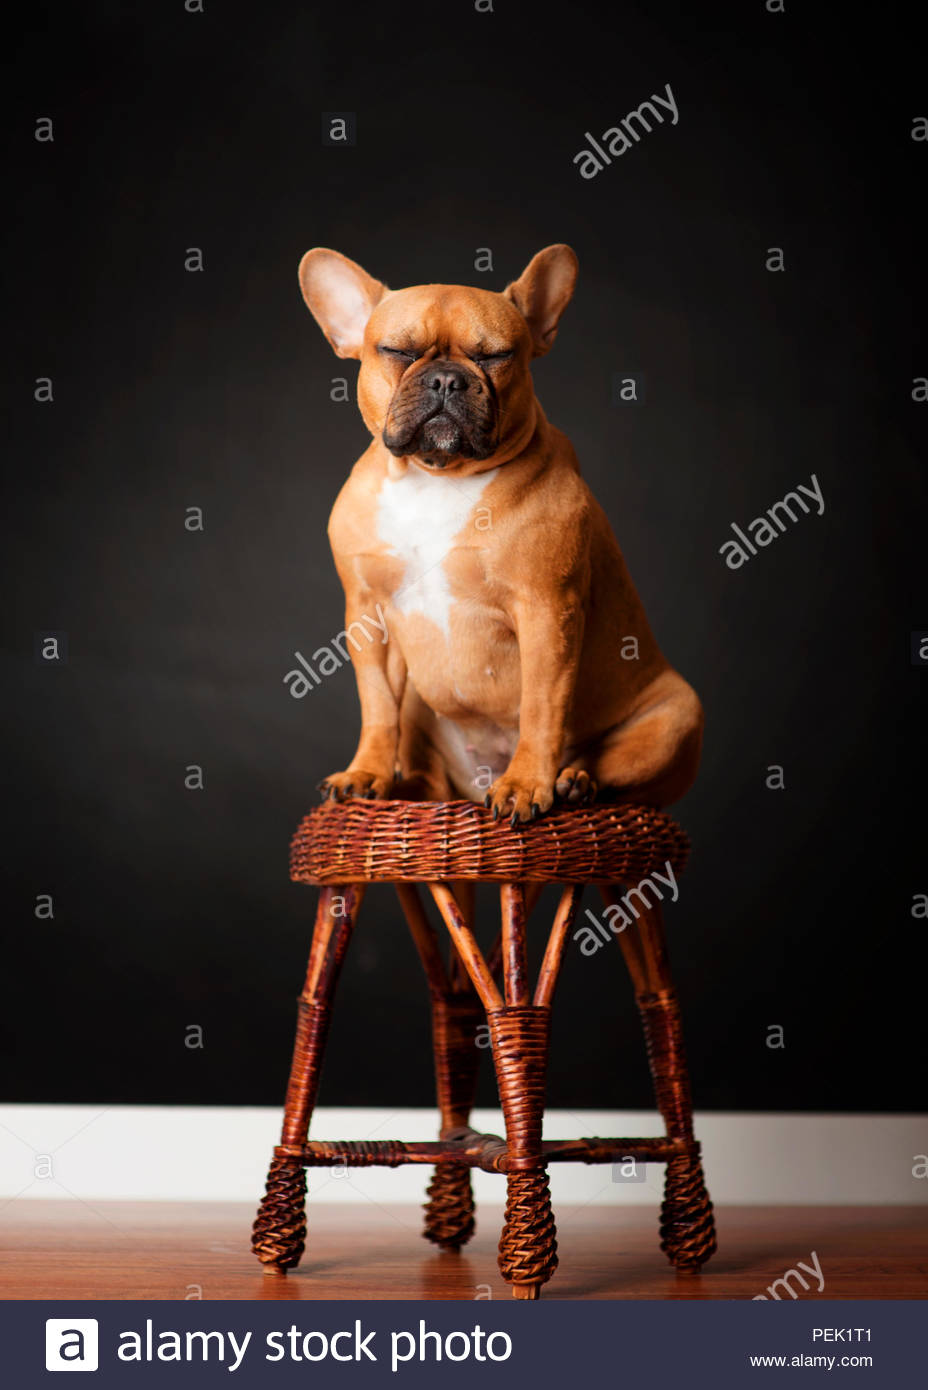 red fawn french bulldog dog sitting on wicker bench posing with eyes closed with black backdrop - Stock Image